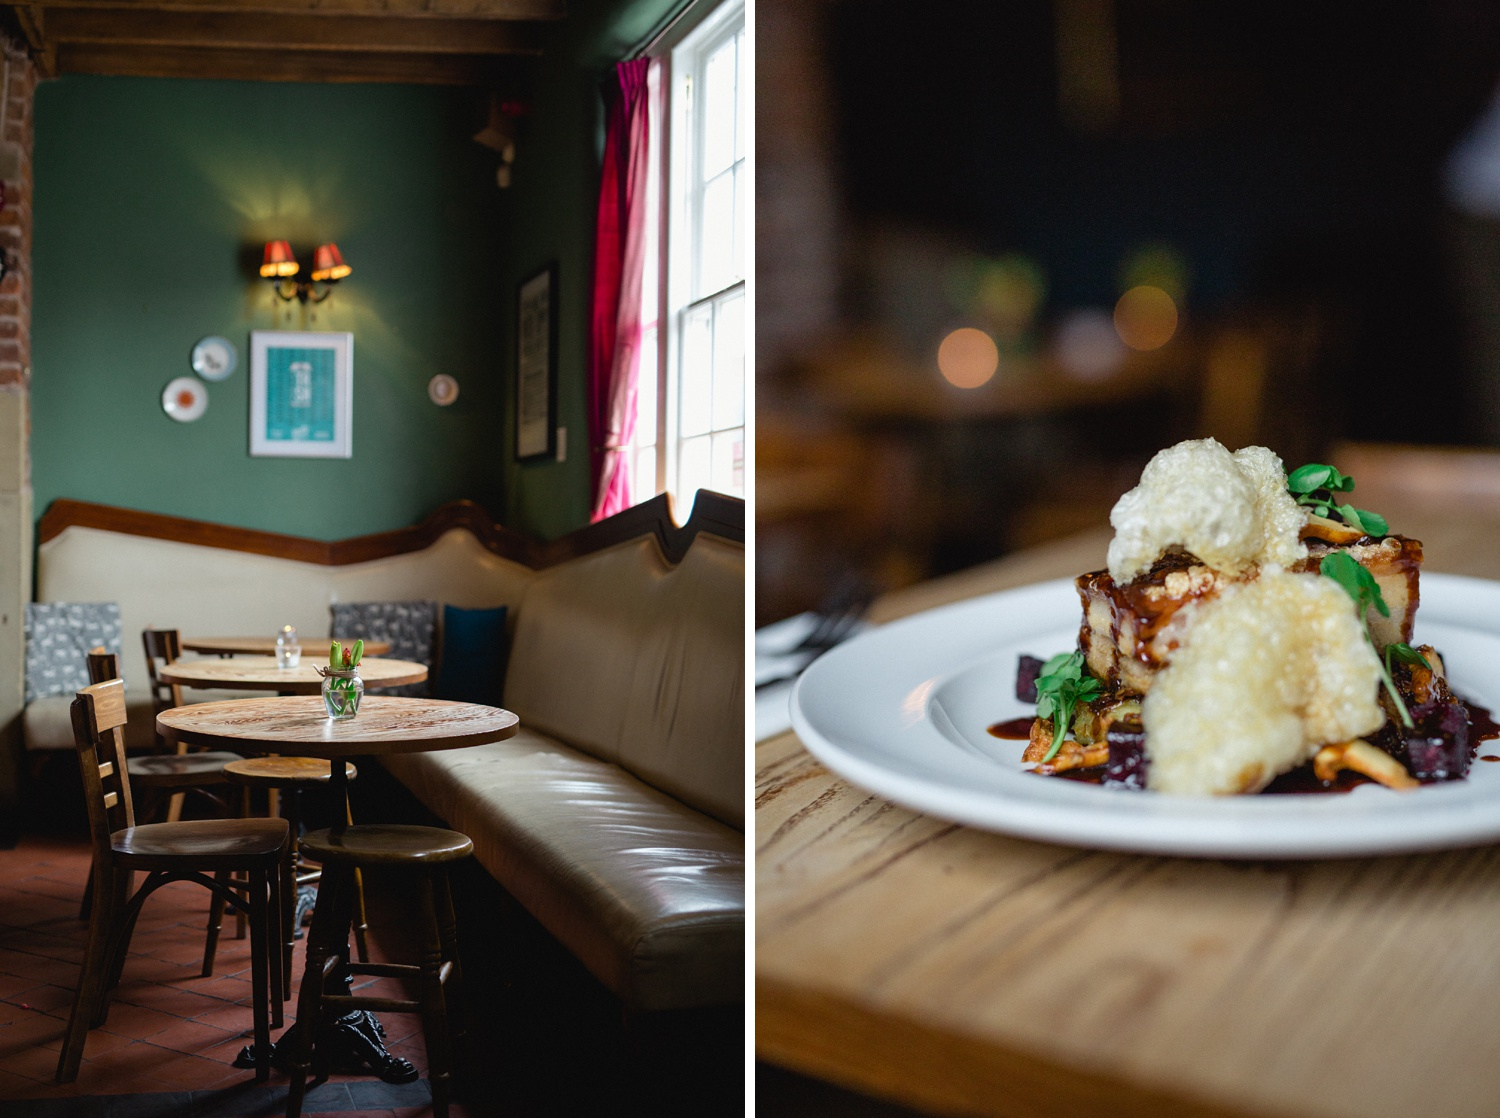 Food photography close up at Cross Keys in Leeds